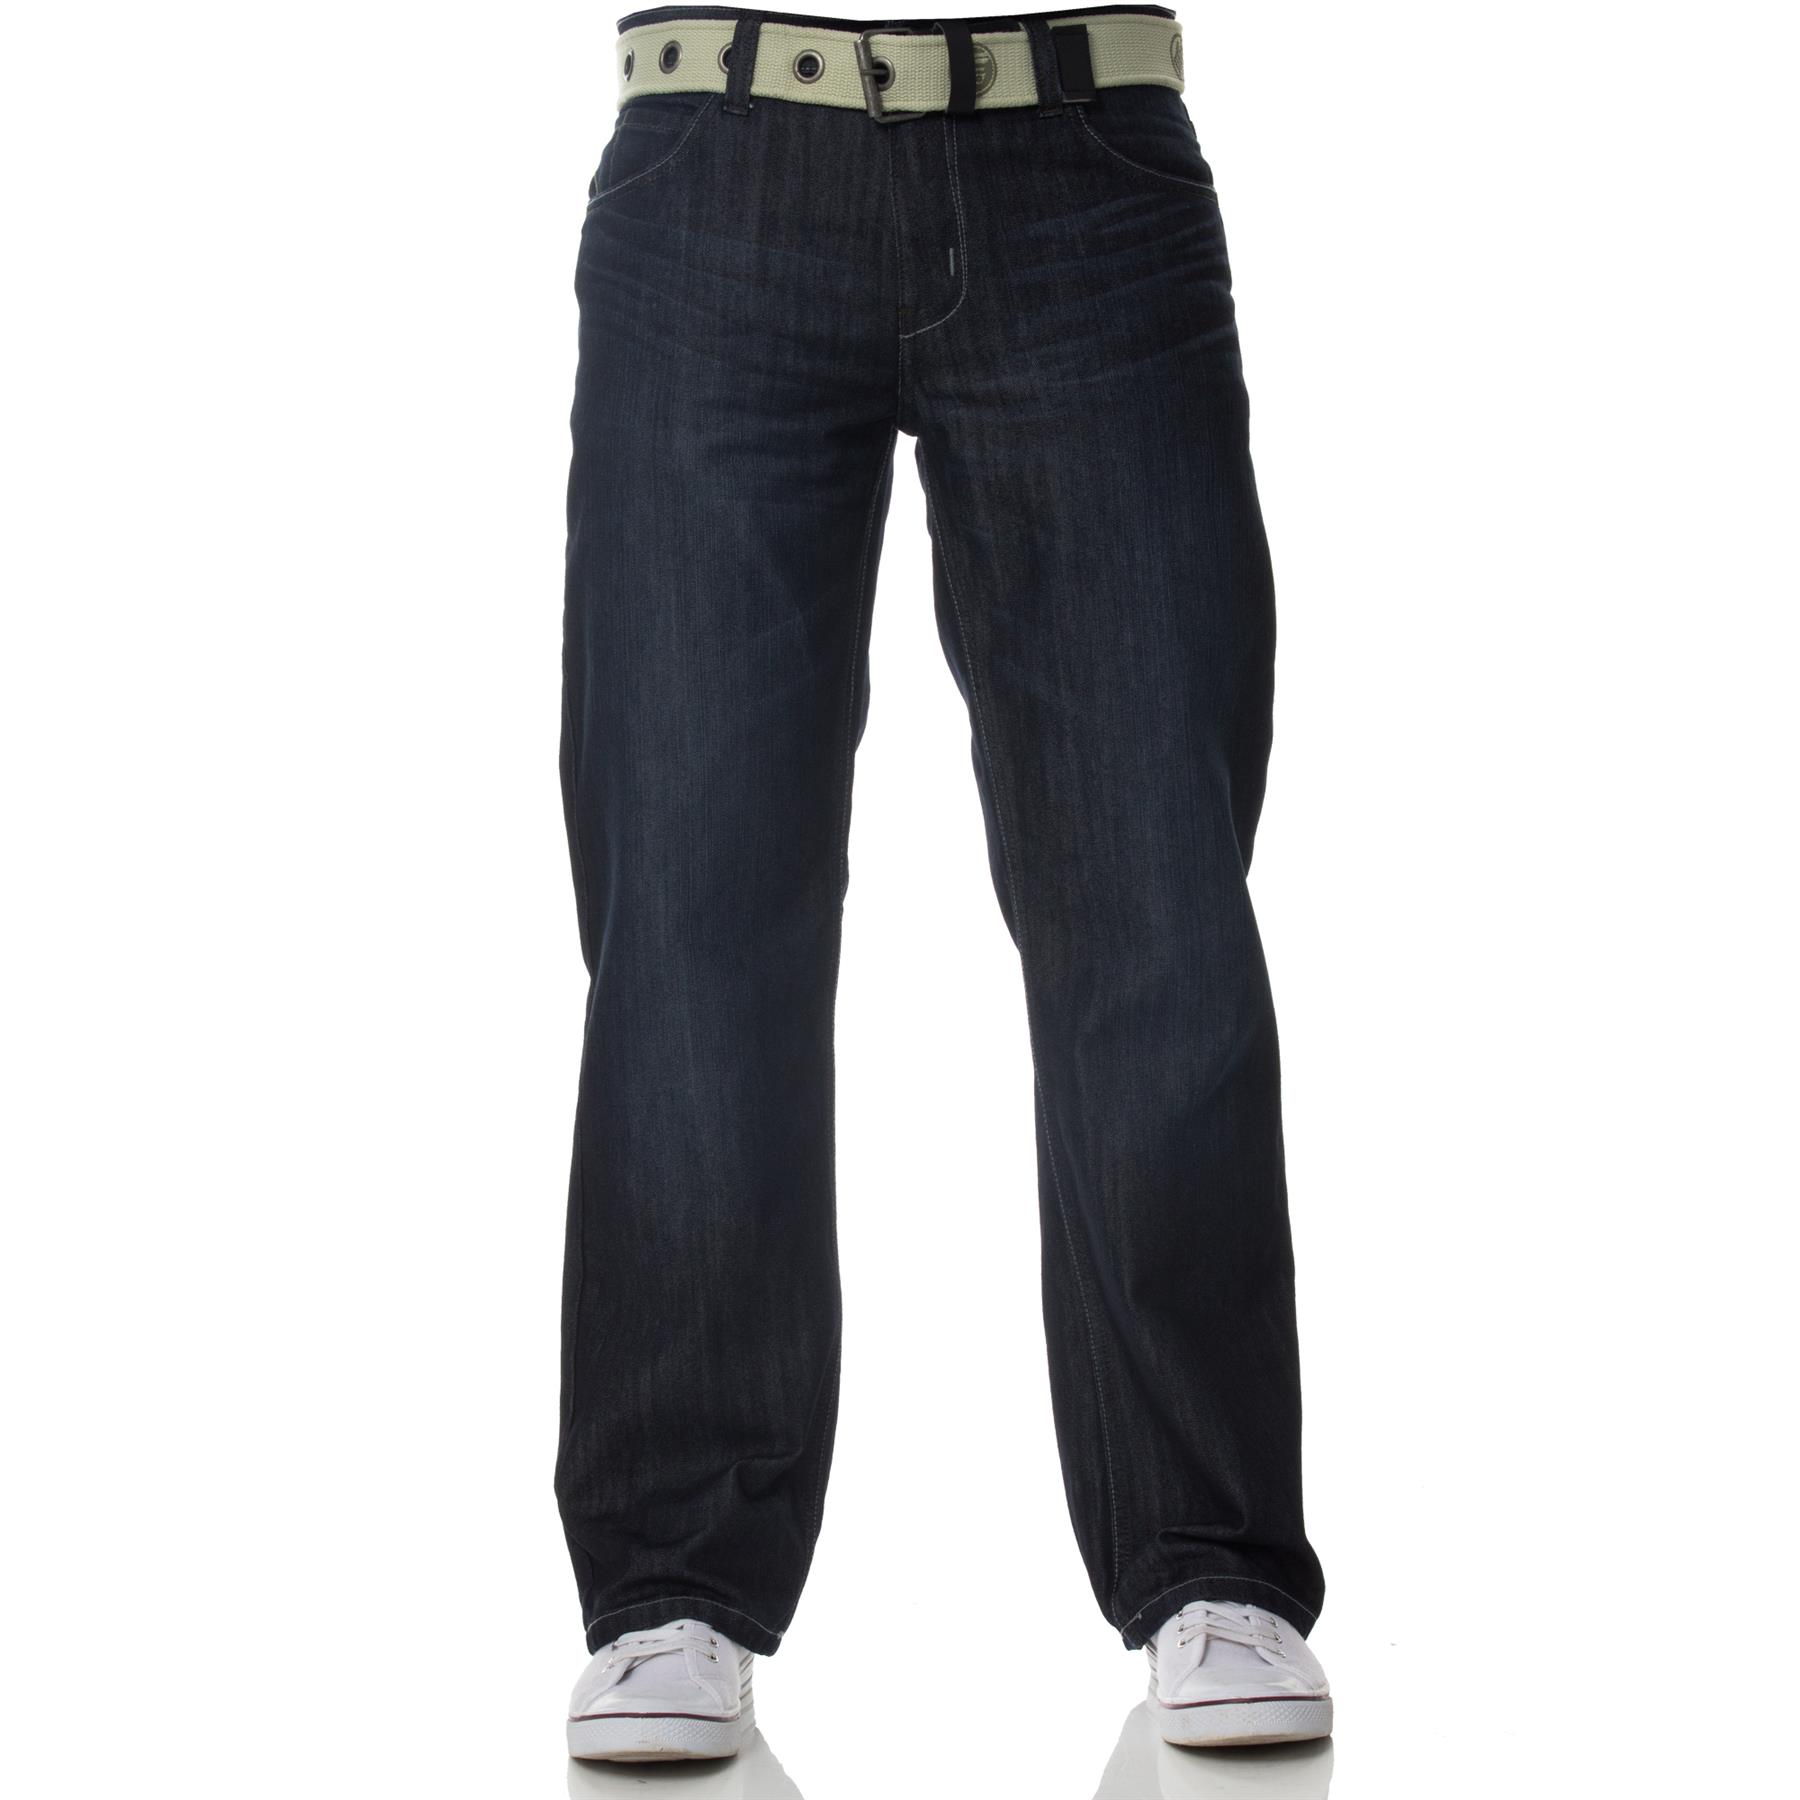 Enzo-Mens-Jeans-Big-Tall-Leg-King-Size-Denim-Pants-Chino-Trousers-Waist-44-034-60-034 miniature 8